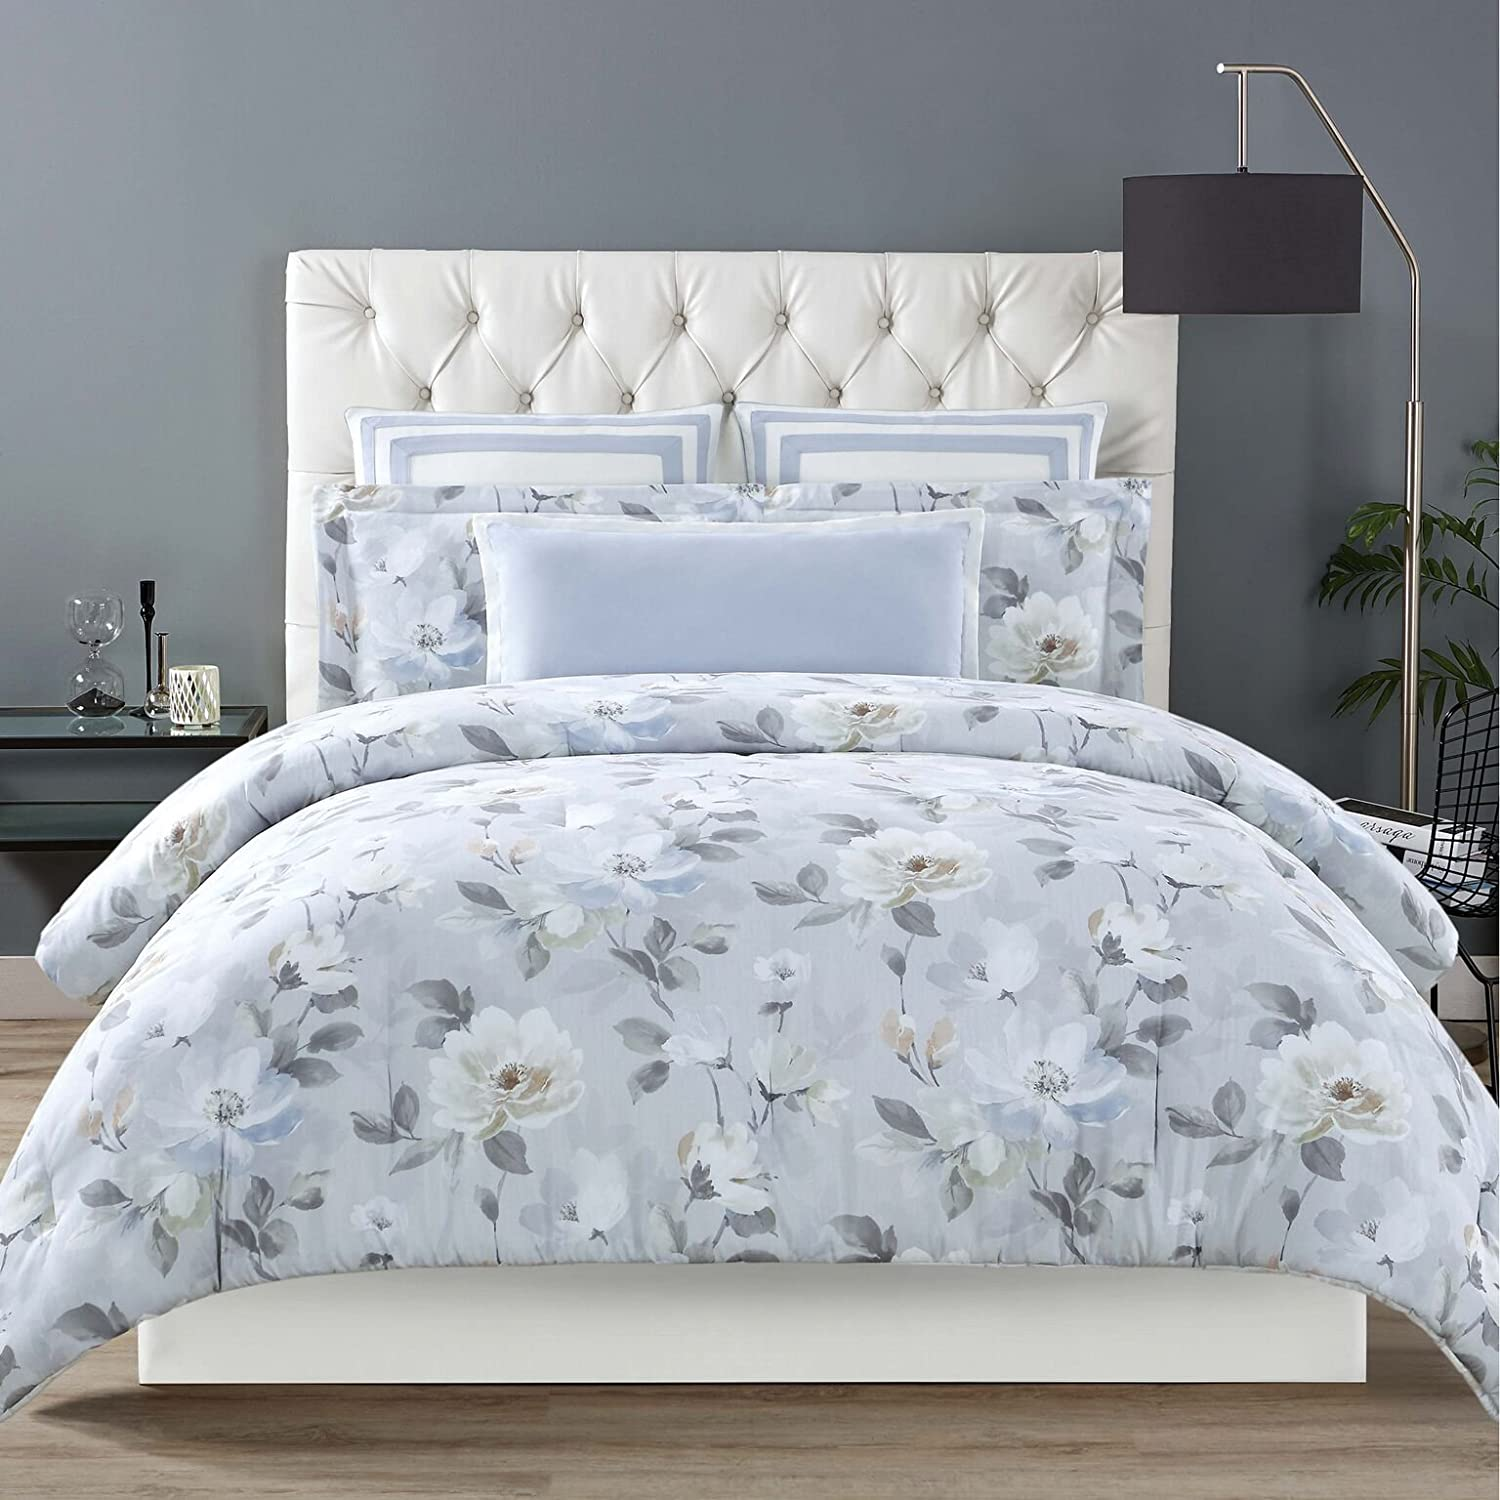 Soft Floral Full Queen Christian Siriano Comforter Set, King, Garden Bloom